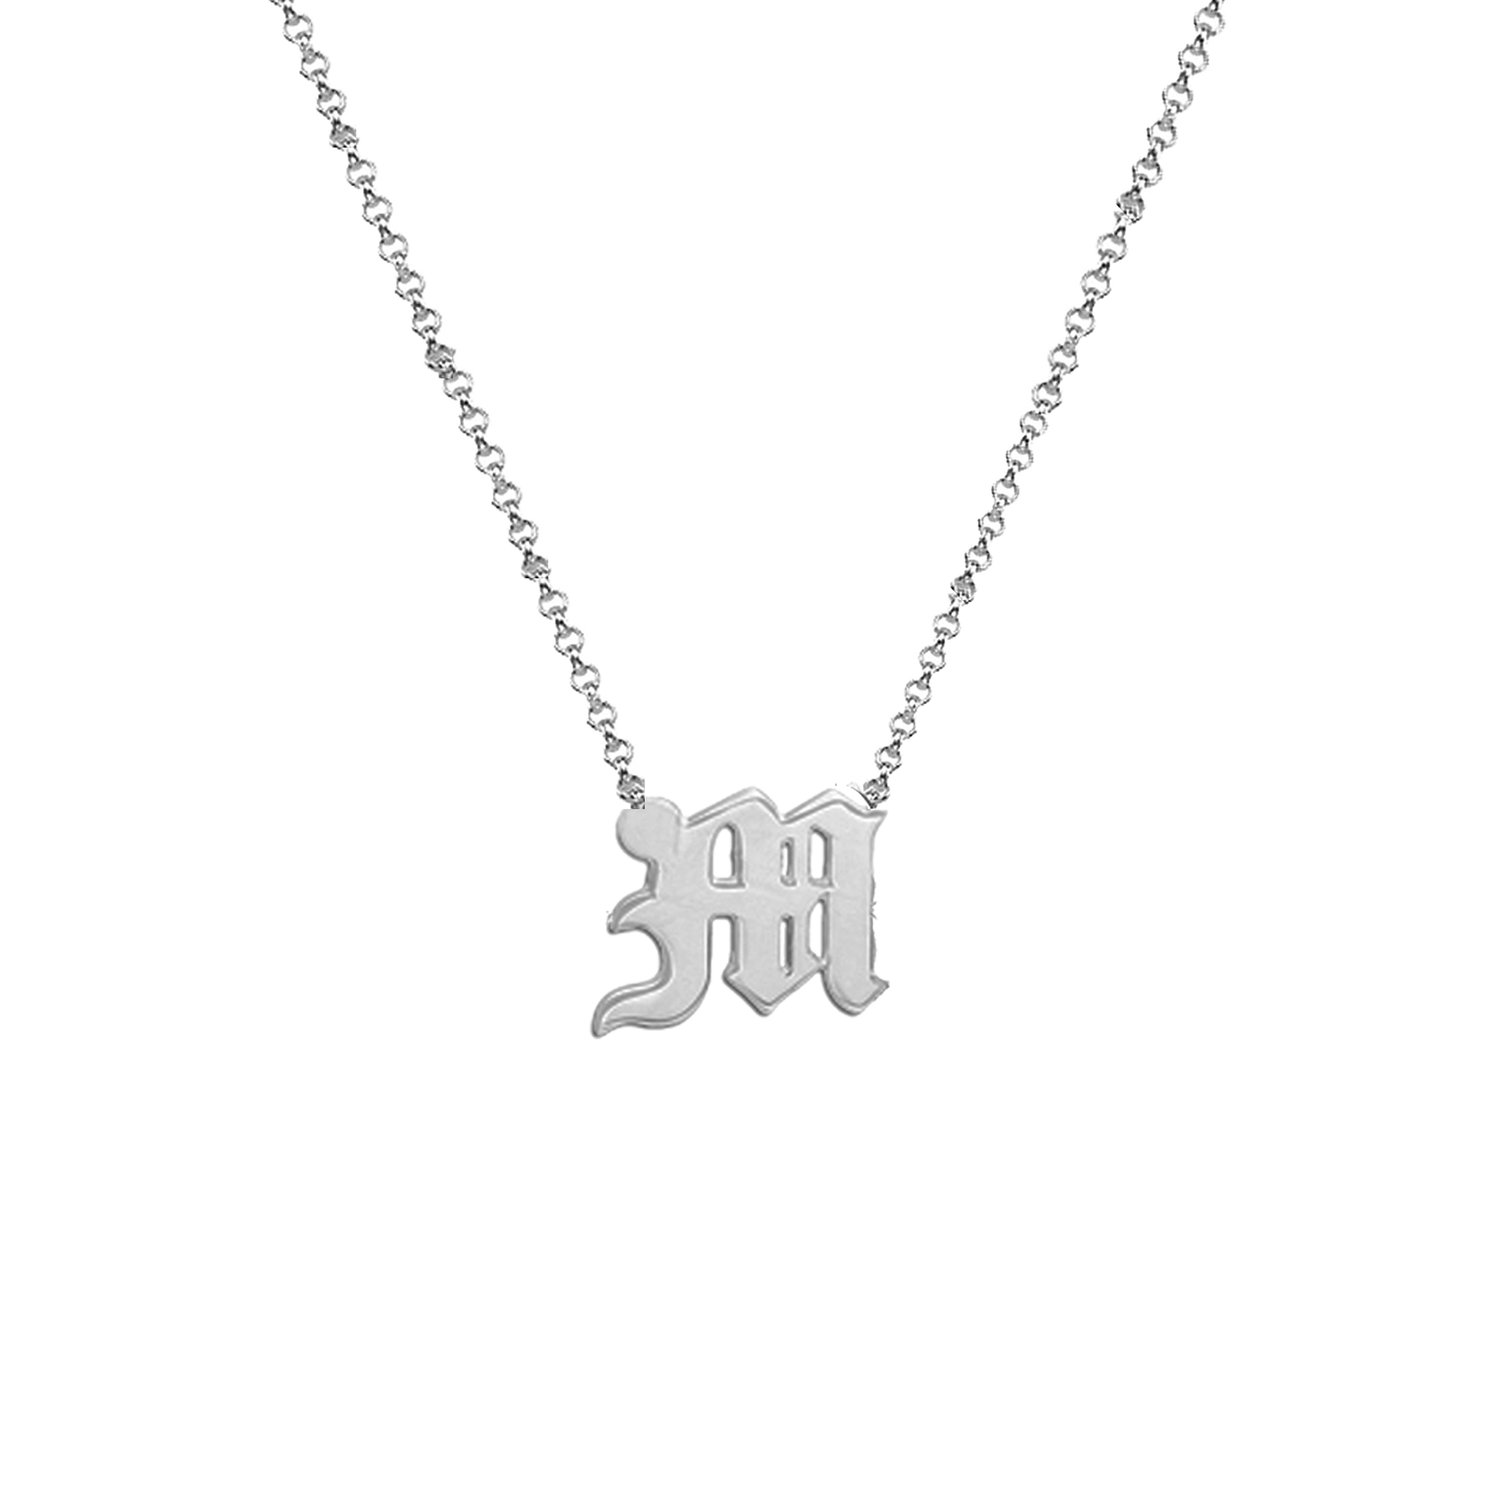 THE MINI GOTHIC INITIAL (UPPERCASE) — The M Jewelers